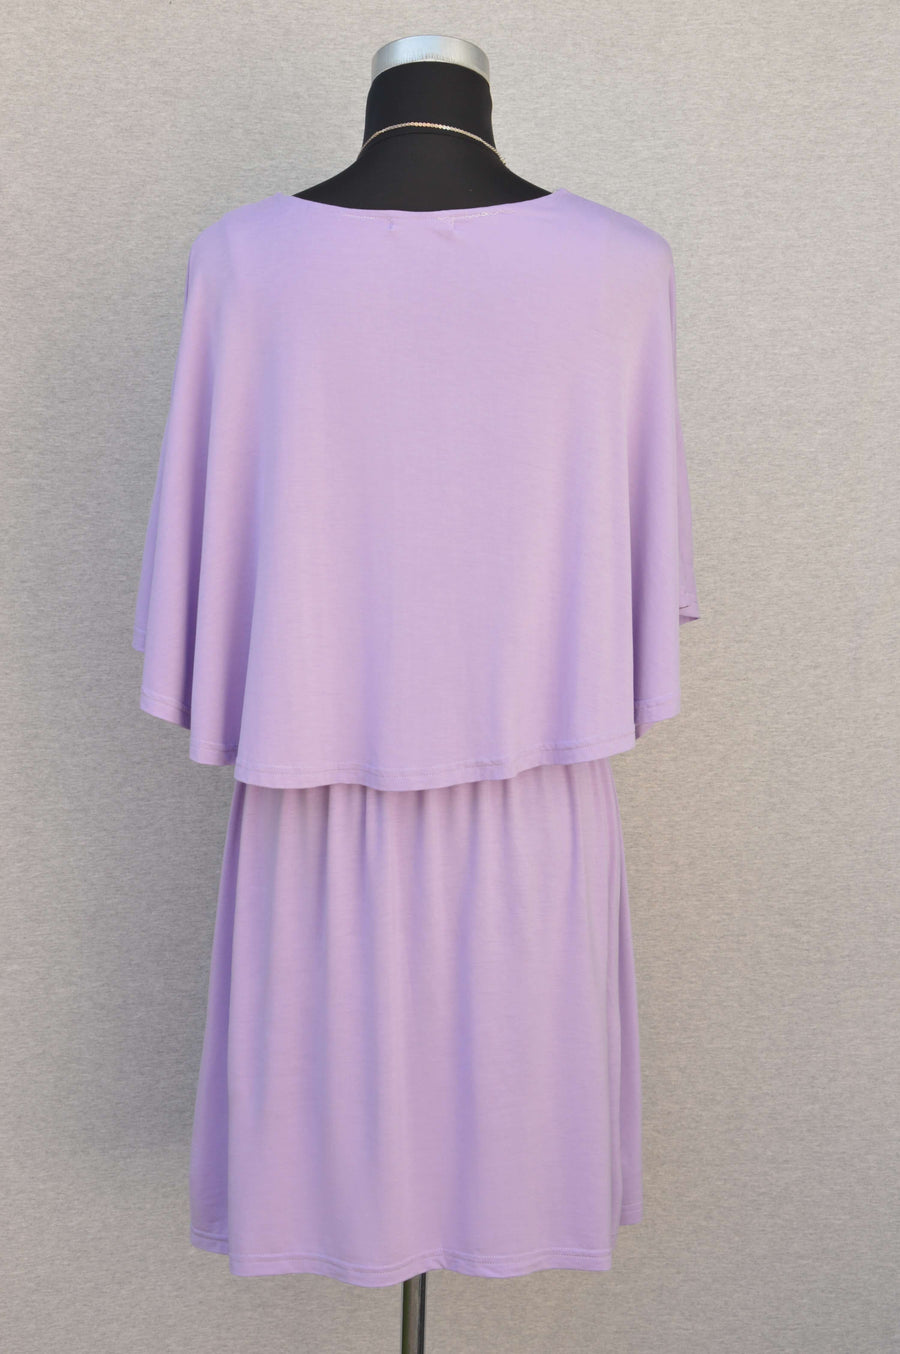 Bearsland stretchy jersey lilac breastfeeding dress, size L (NZ 10/12)